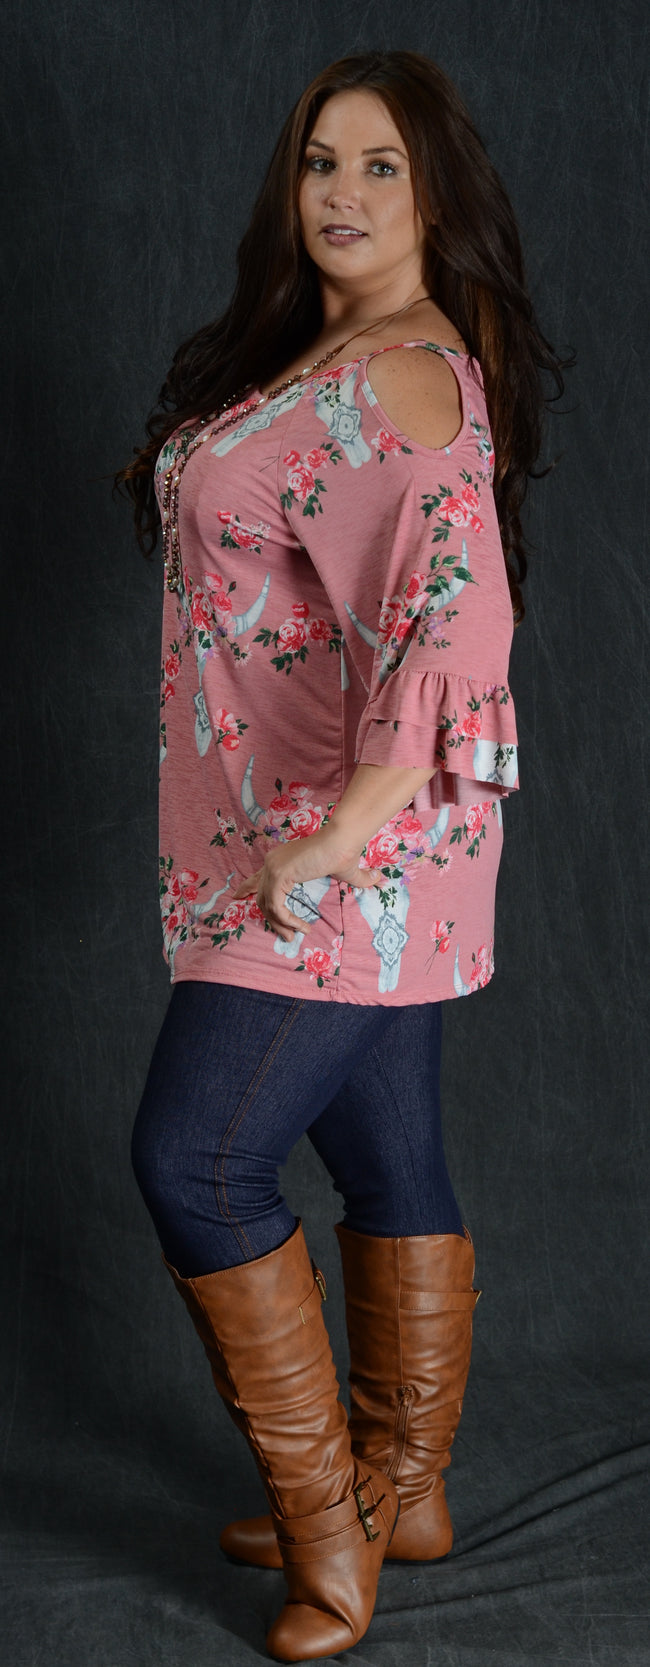 Pink Cold Shoulder Bullhead Top - www.mycurvystore.com - Curvy Boutique - Plus Size